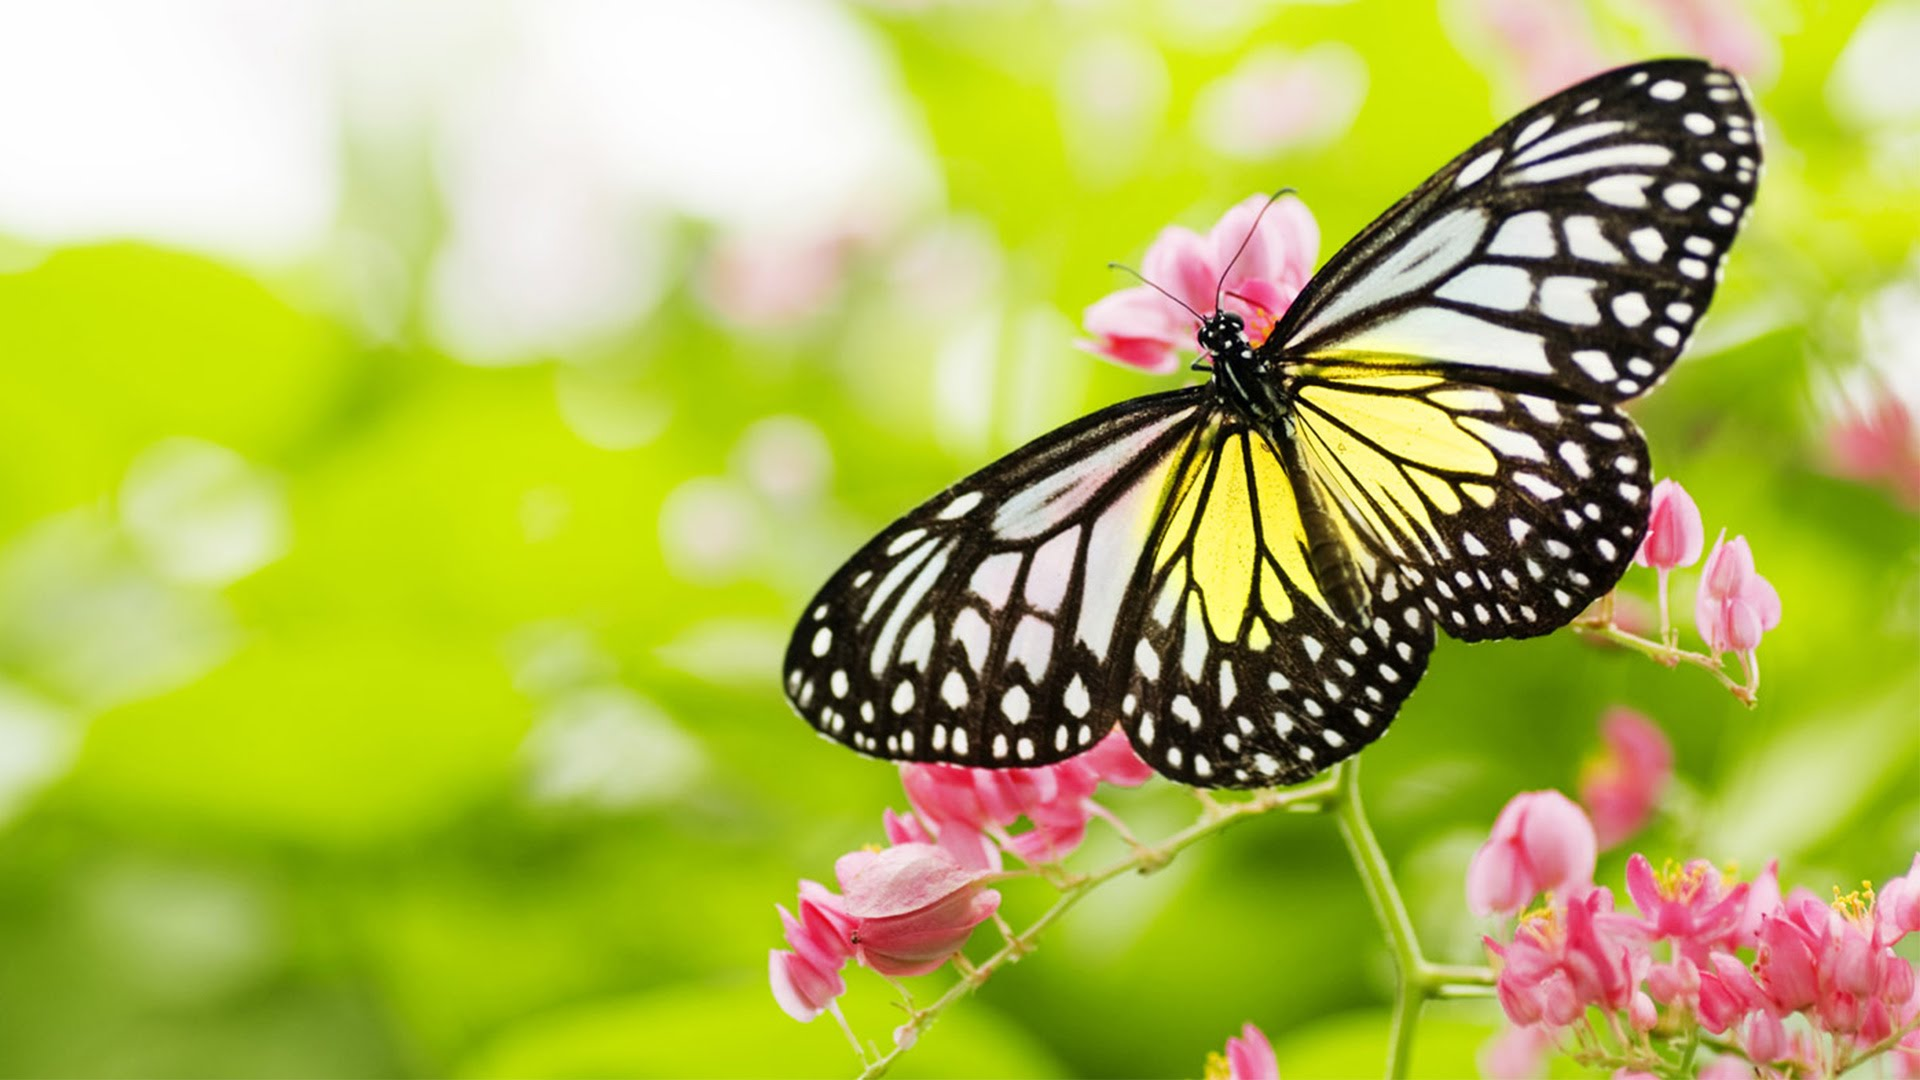 Pictures Of Flowers And Butterflies in HD for Desktop ...